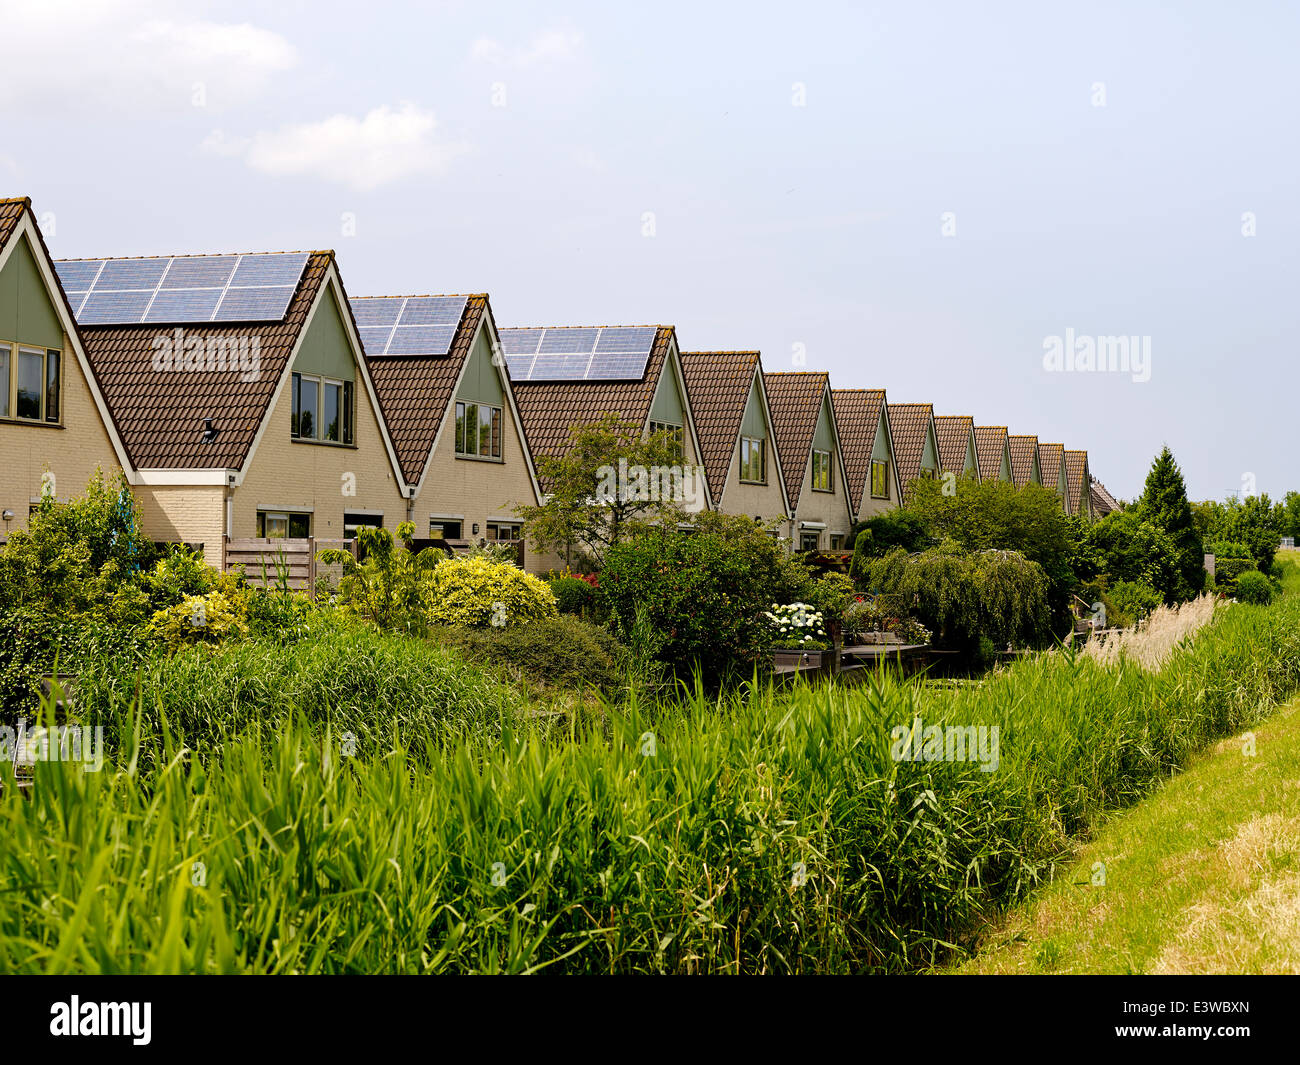 Generating solar energy by placing solar panels on houses, Netherlands 2014 - Stock Image